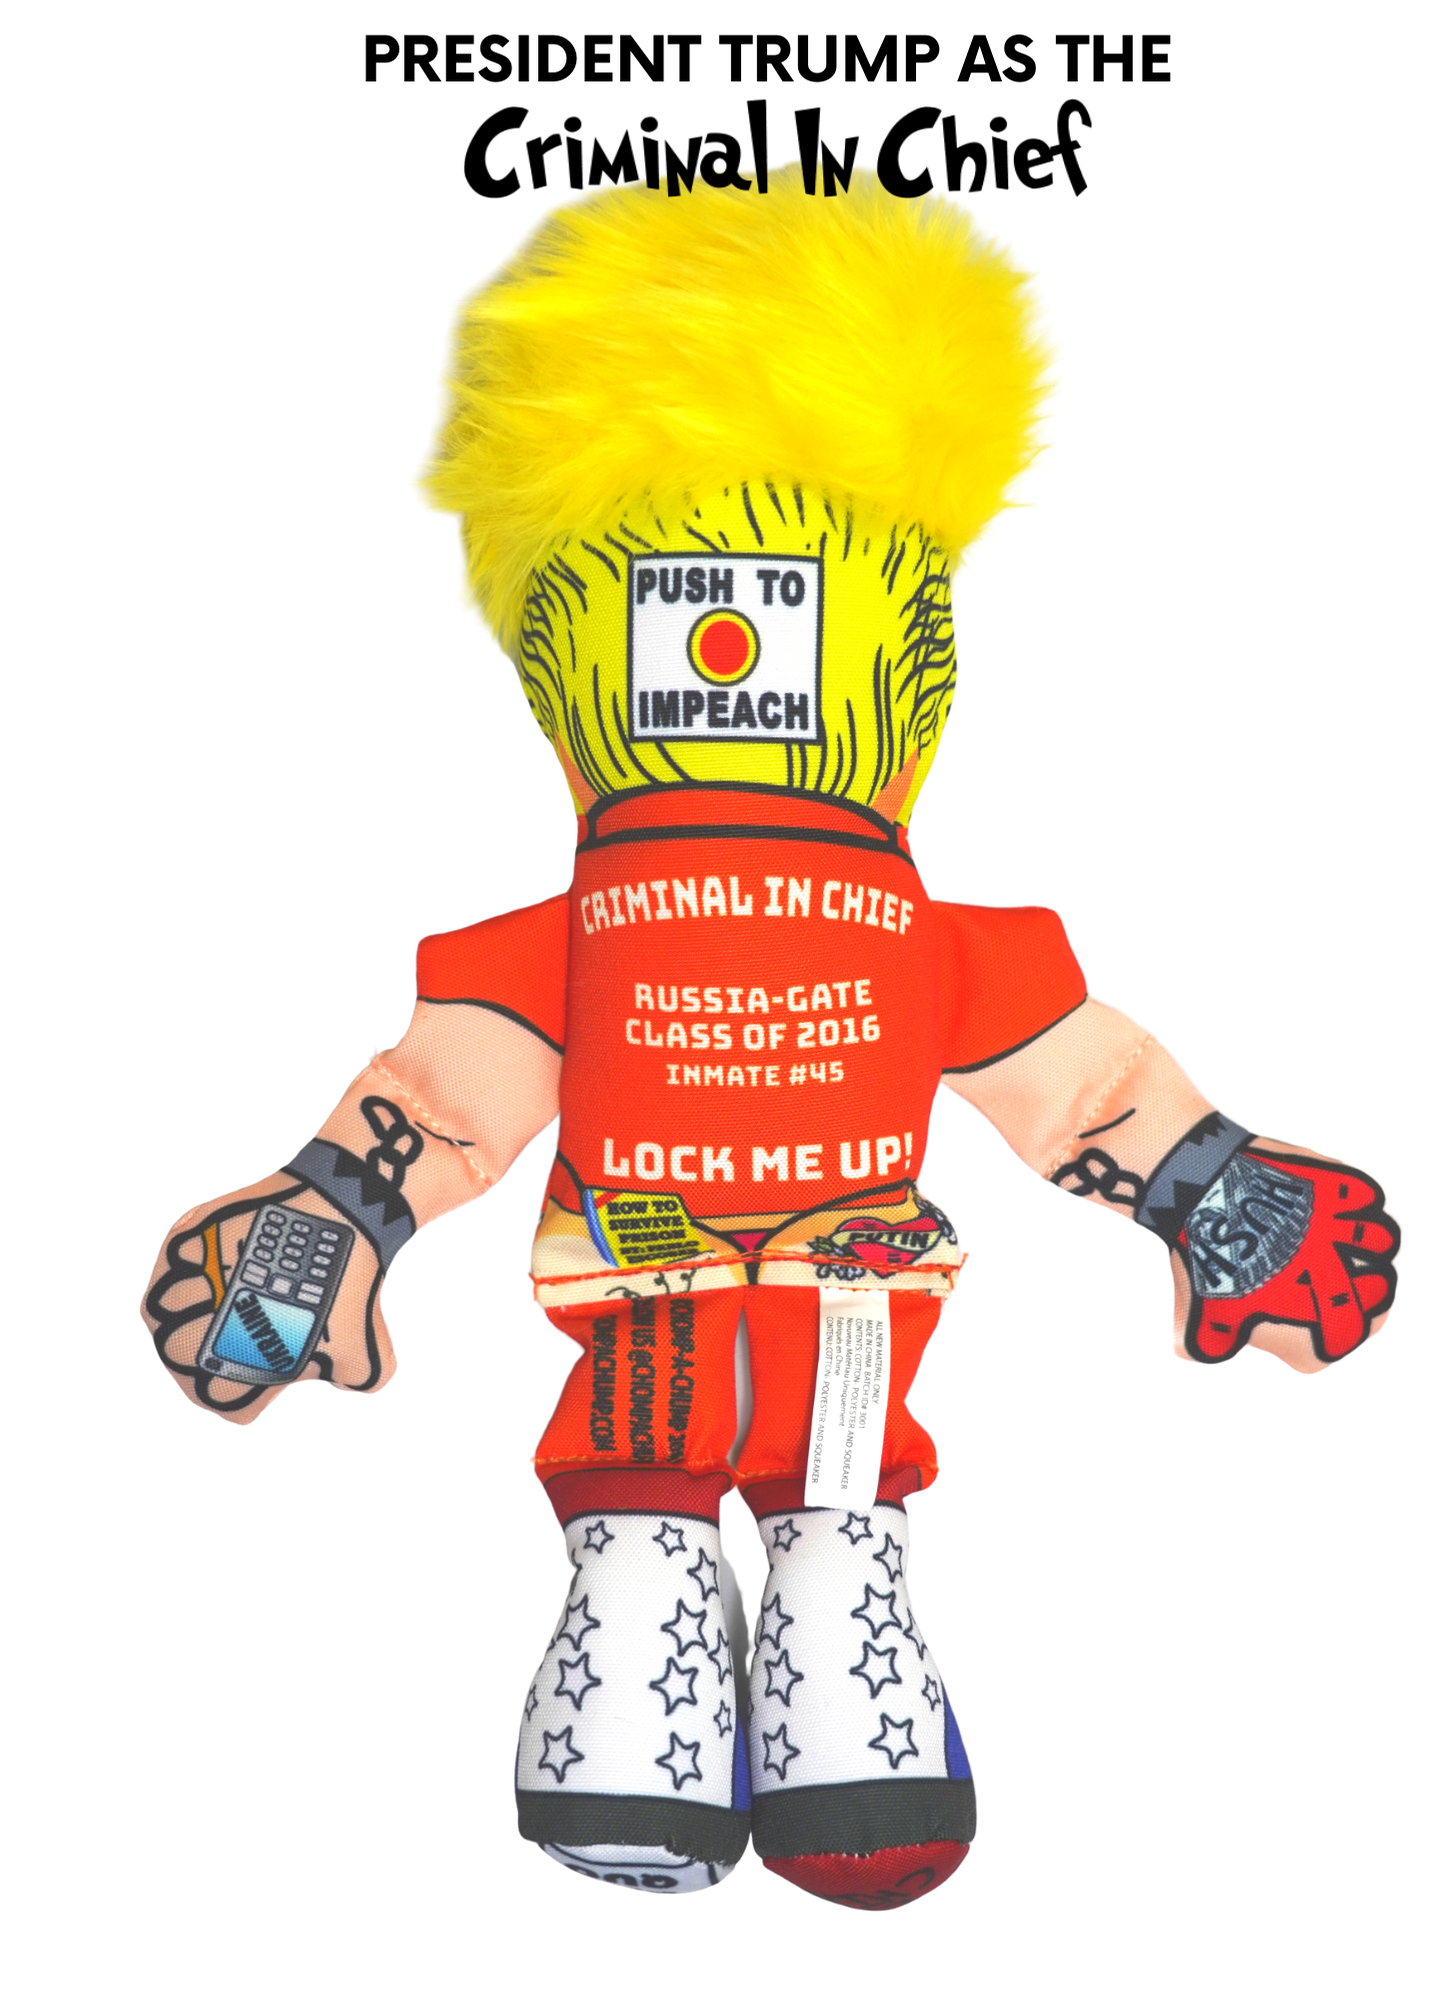 "Donald Trump ""Lock Him Up"" Political Dog Toy by Chomp A Chump - Impeachment Series - Chomp A Chump: Donald Trump Presidential Parody Dog and Cat Toy"